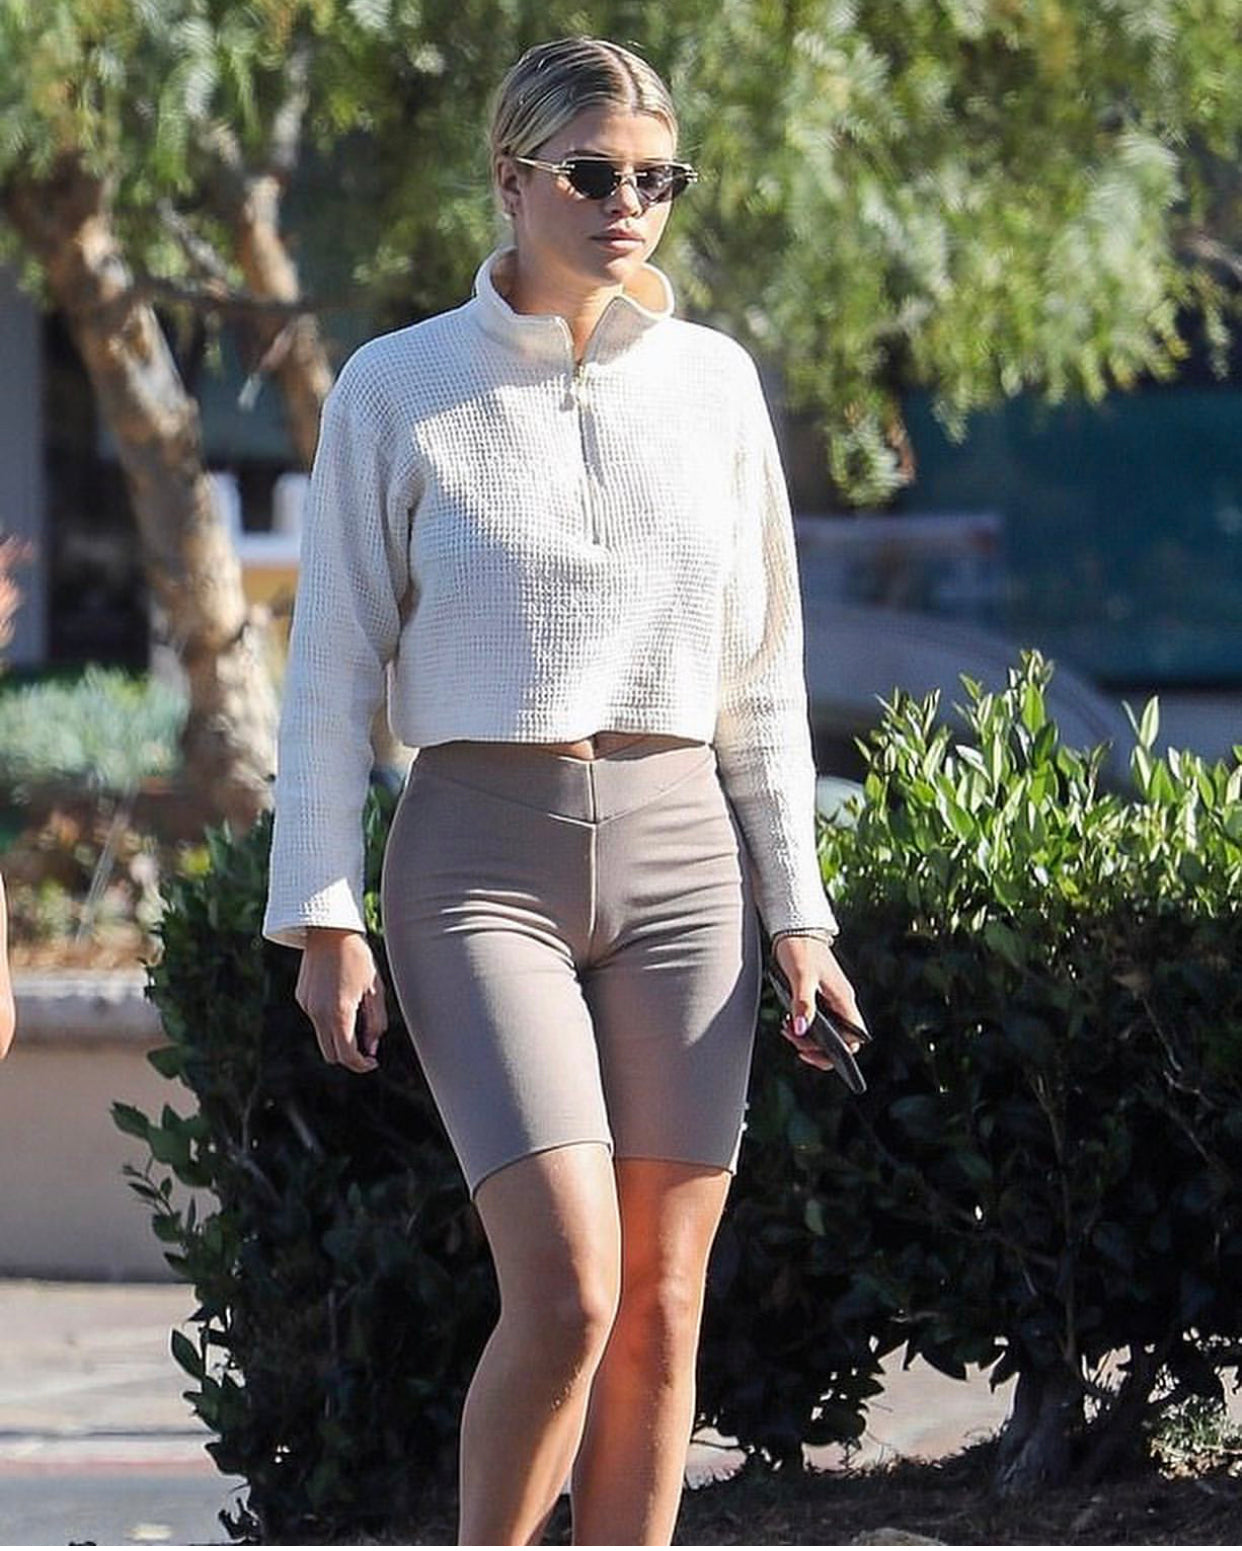 STAPLE-AND-HUE - Soho Shorts - Mocha - Staple & Hue - Celebrity Fashion - Luxe - Basics - Kylie Jenner - Khloe Kardashian - Kourtney Kardashian - Sofia Richie